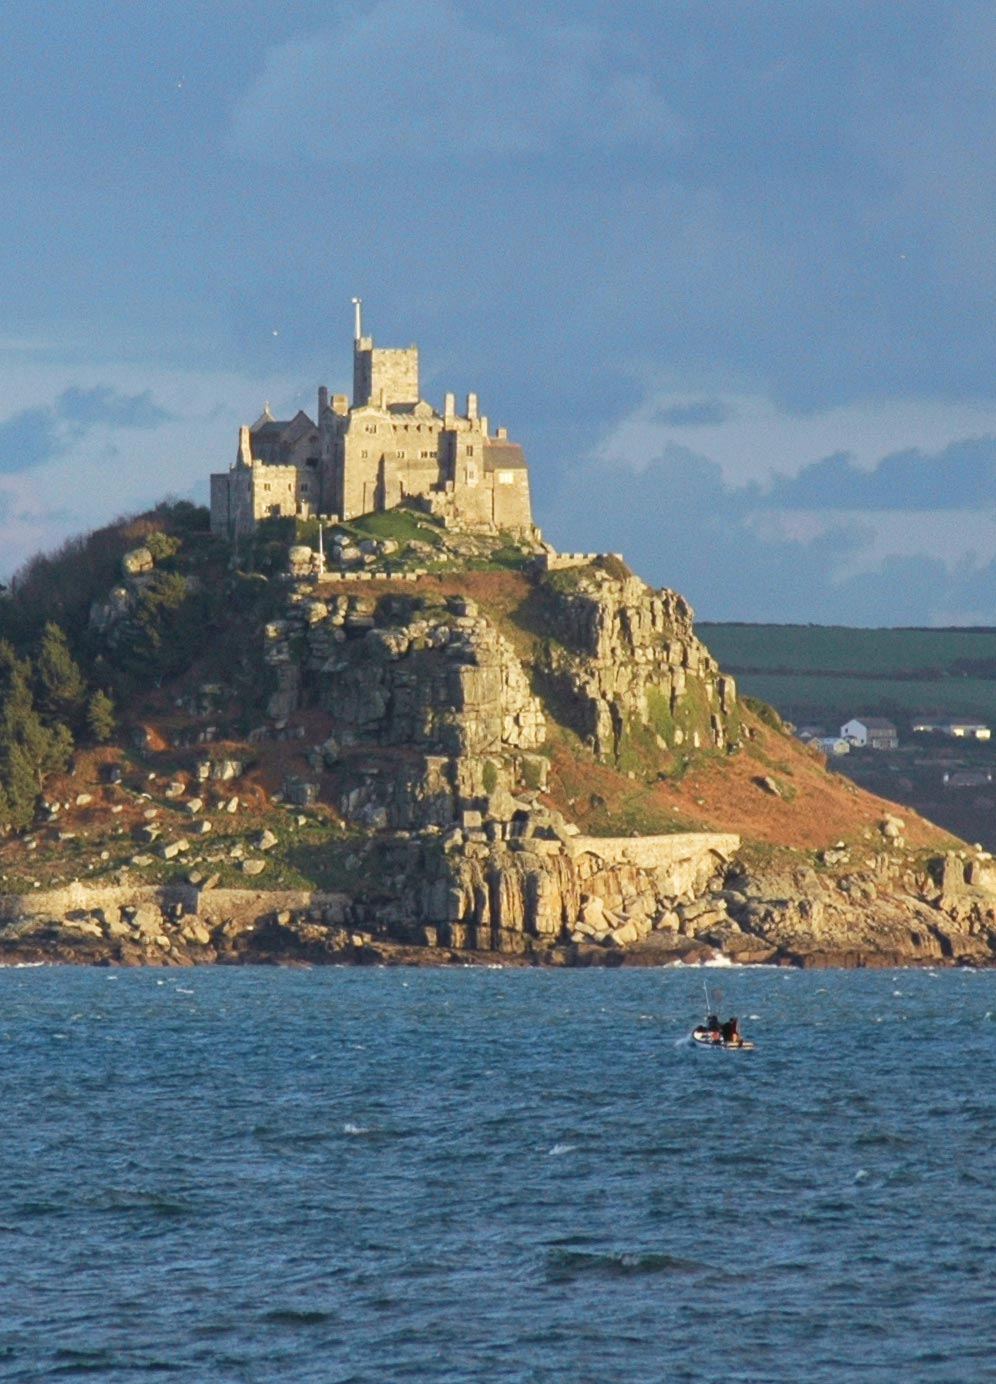 St Michael's Mount: Facts and Information